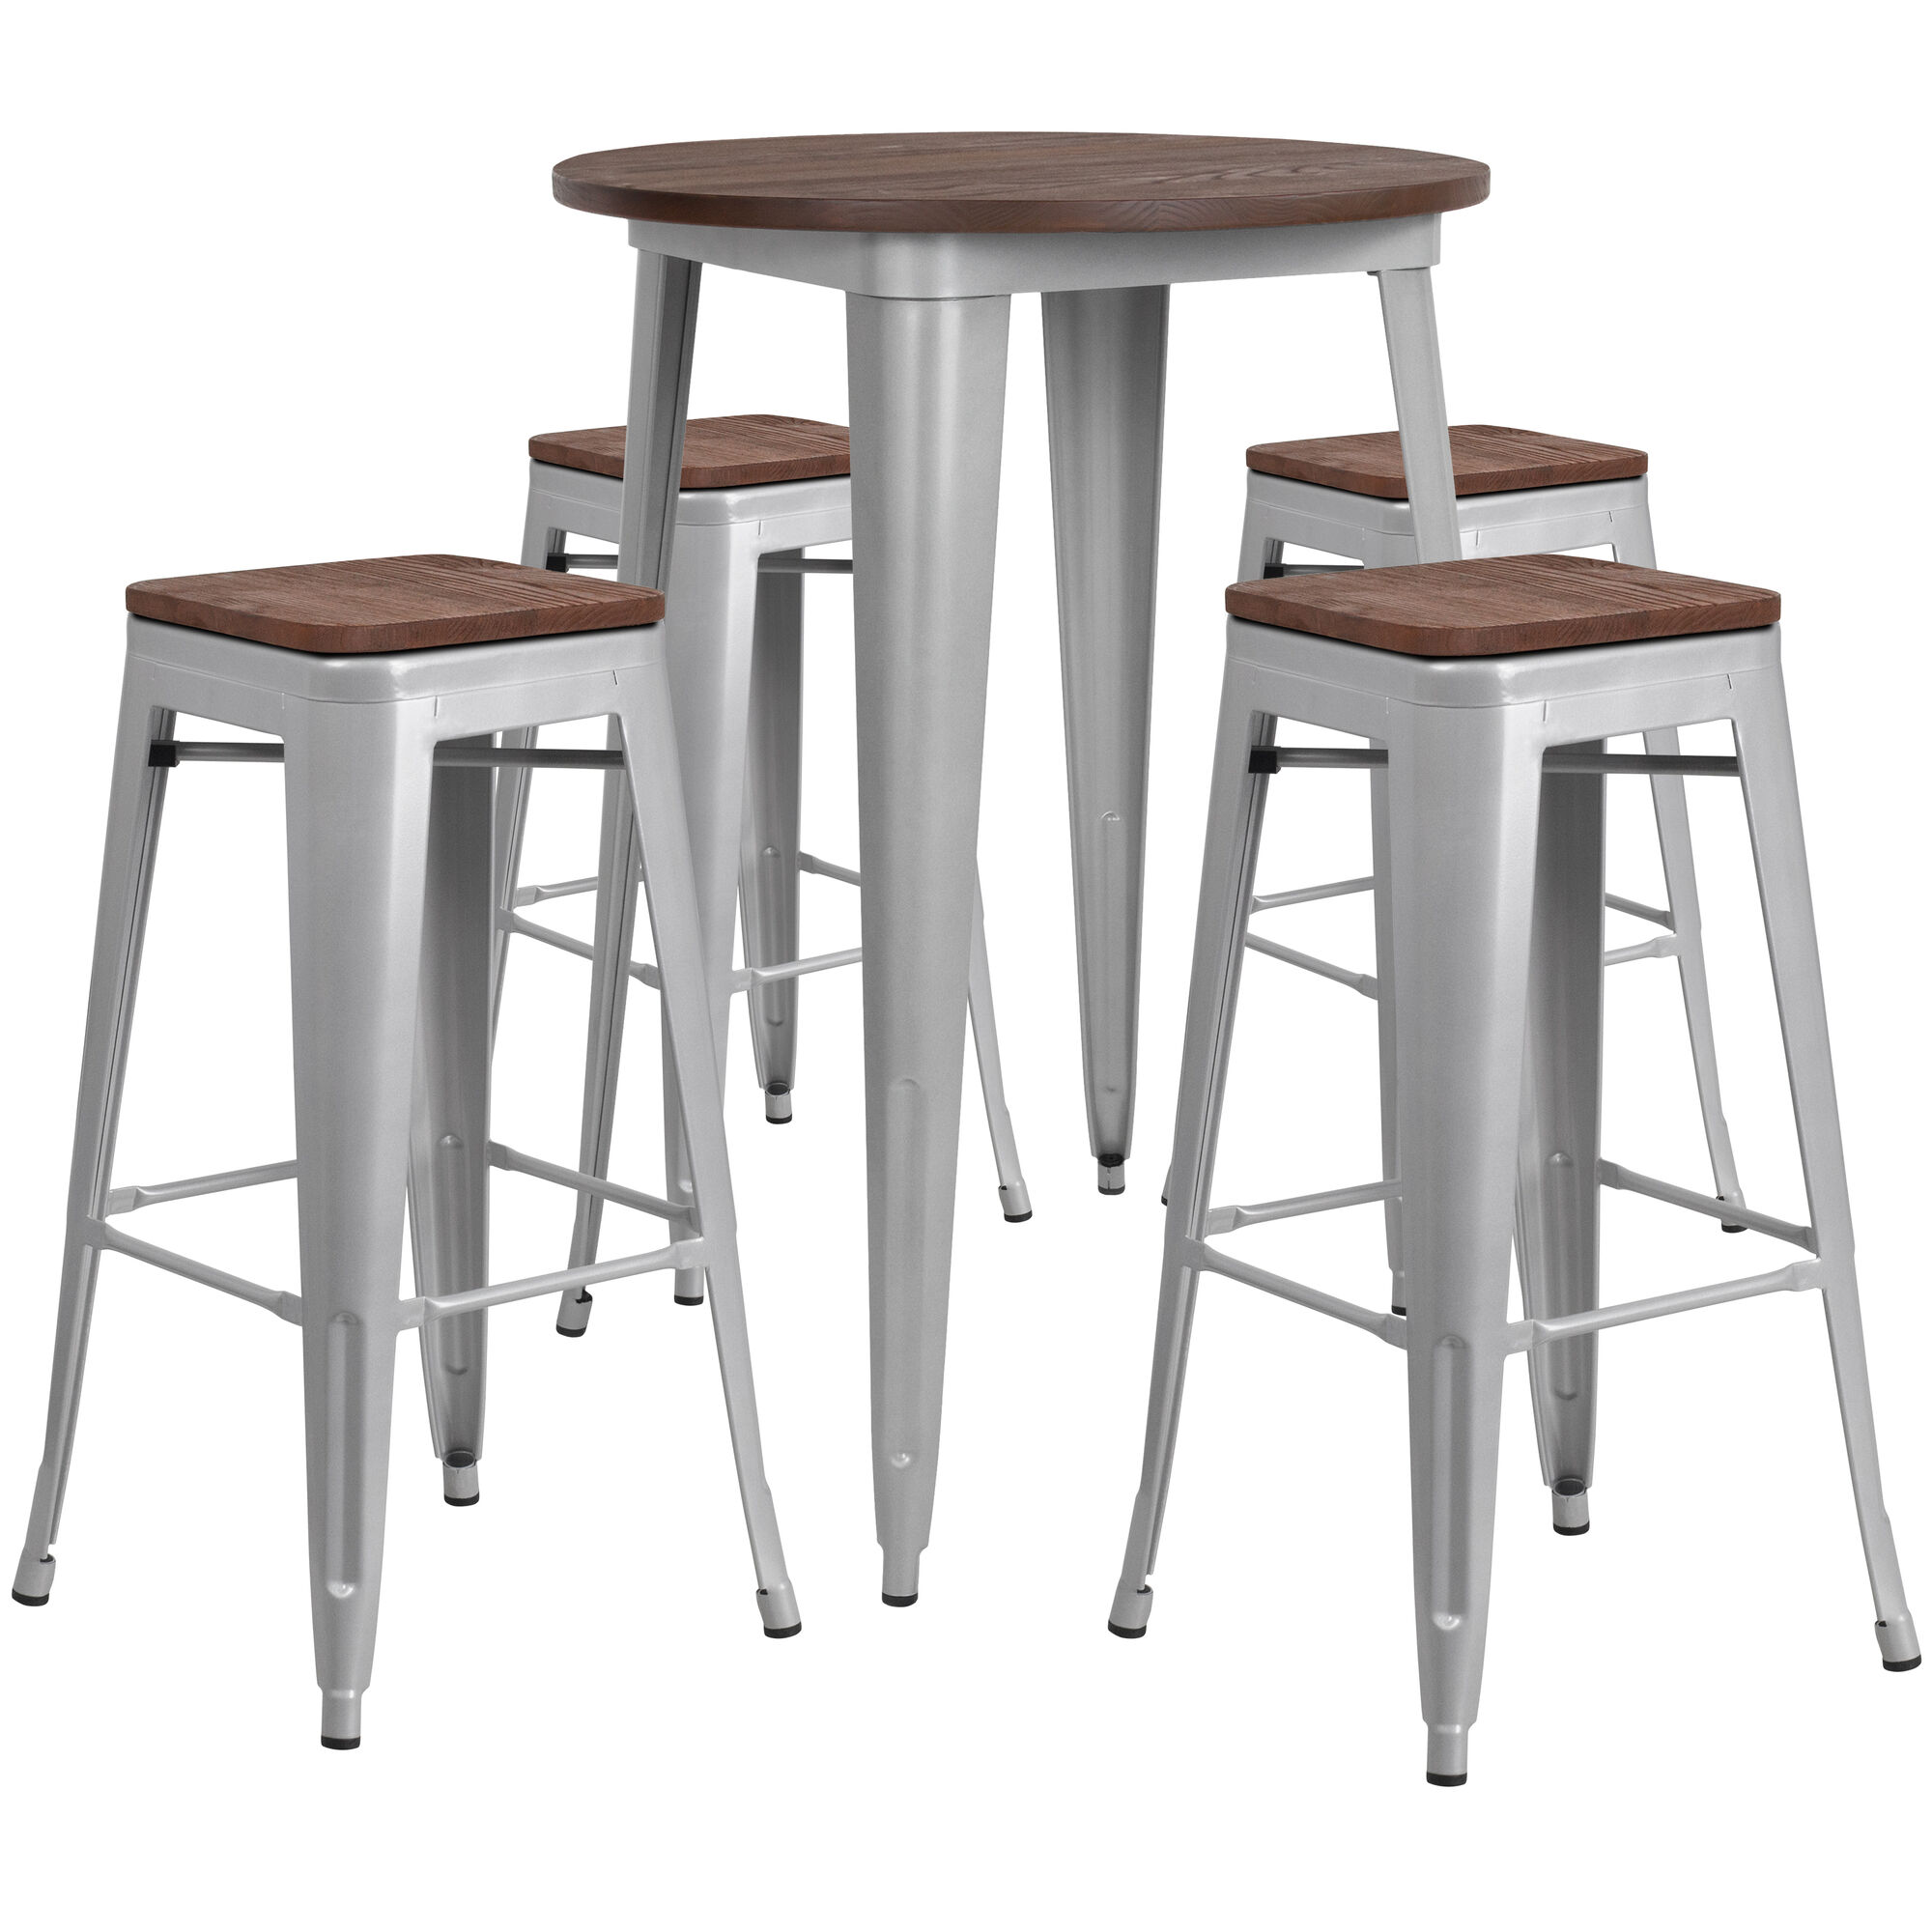 Wondrous 30 Round Silver Metal Bar Table Set With Wood Top And 4 Backless Stools Onthecornerstone Fun Painted Chair Ideas Images Onthecornerstoneorg